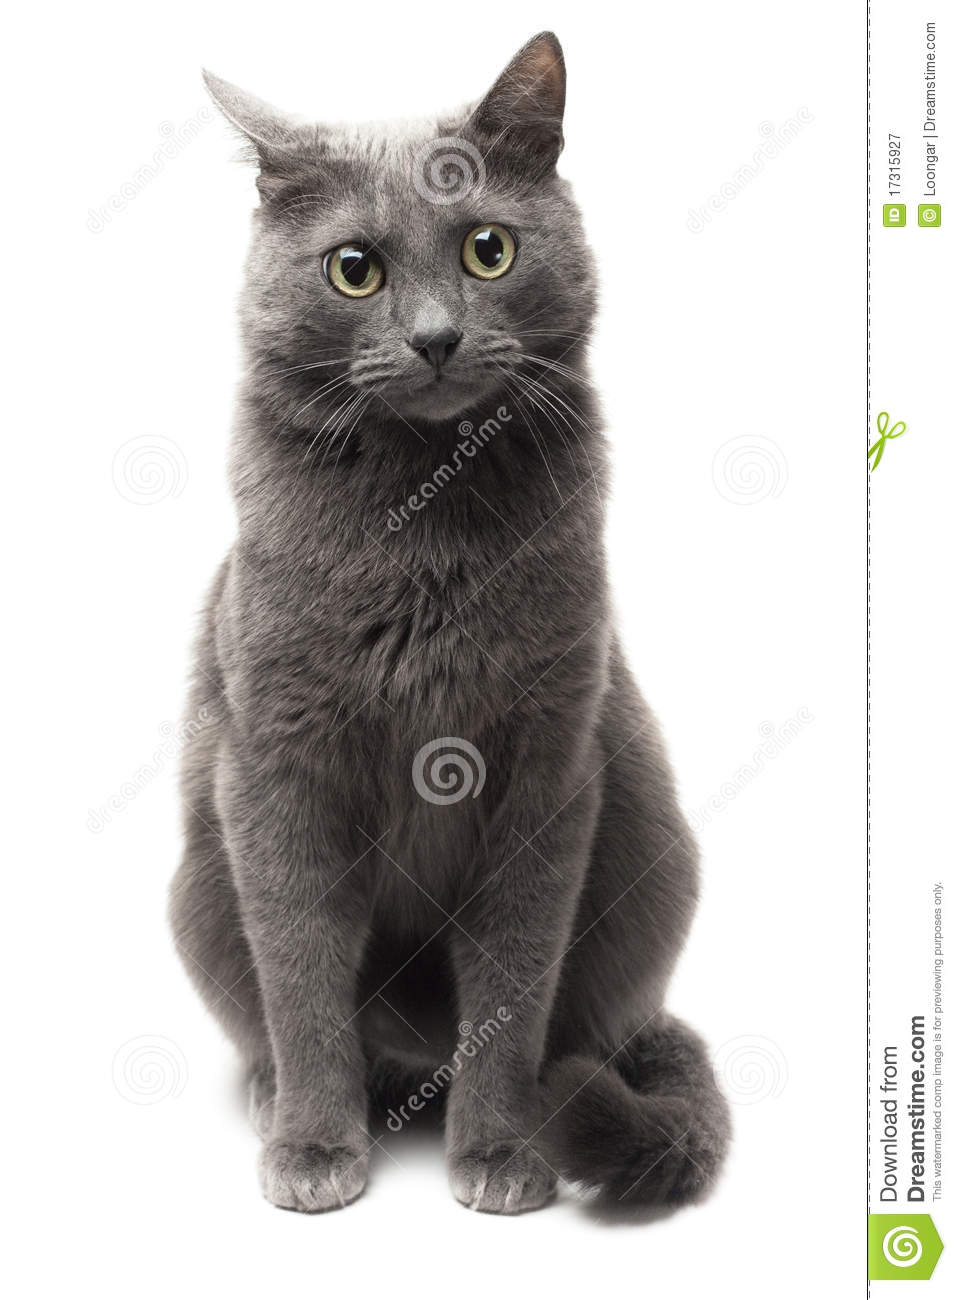 Grey Cat Sitting Over White Background Royalty Free Stock